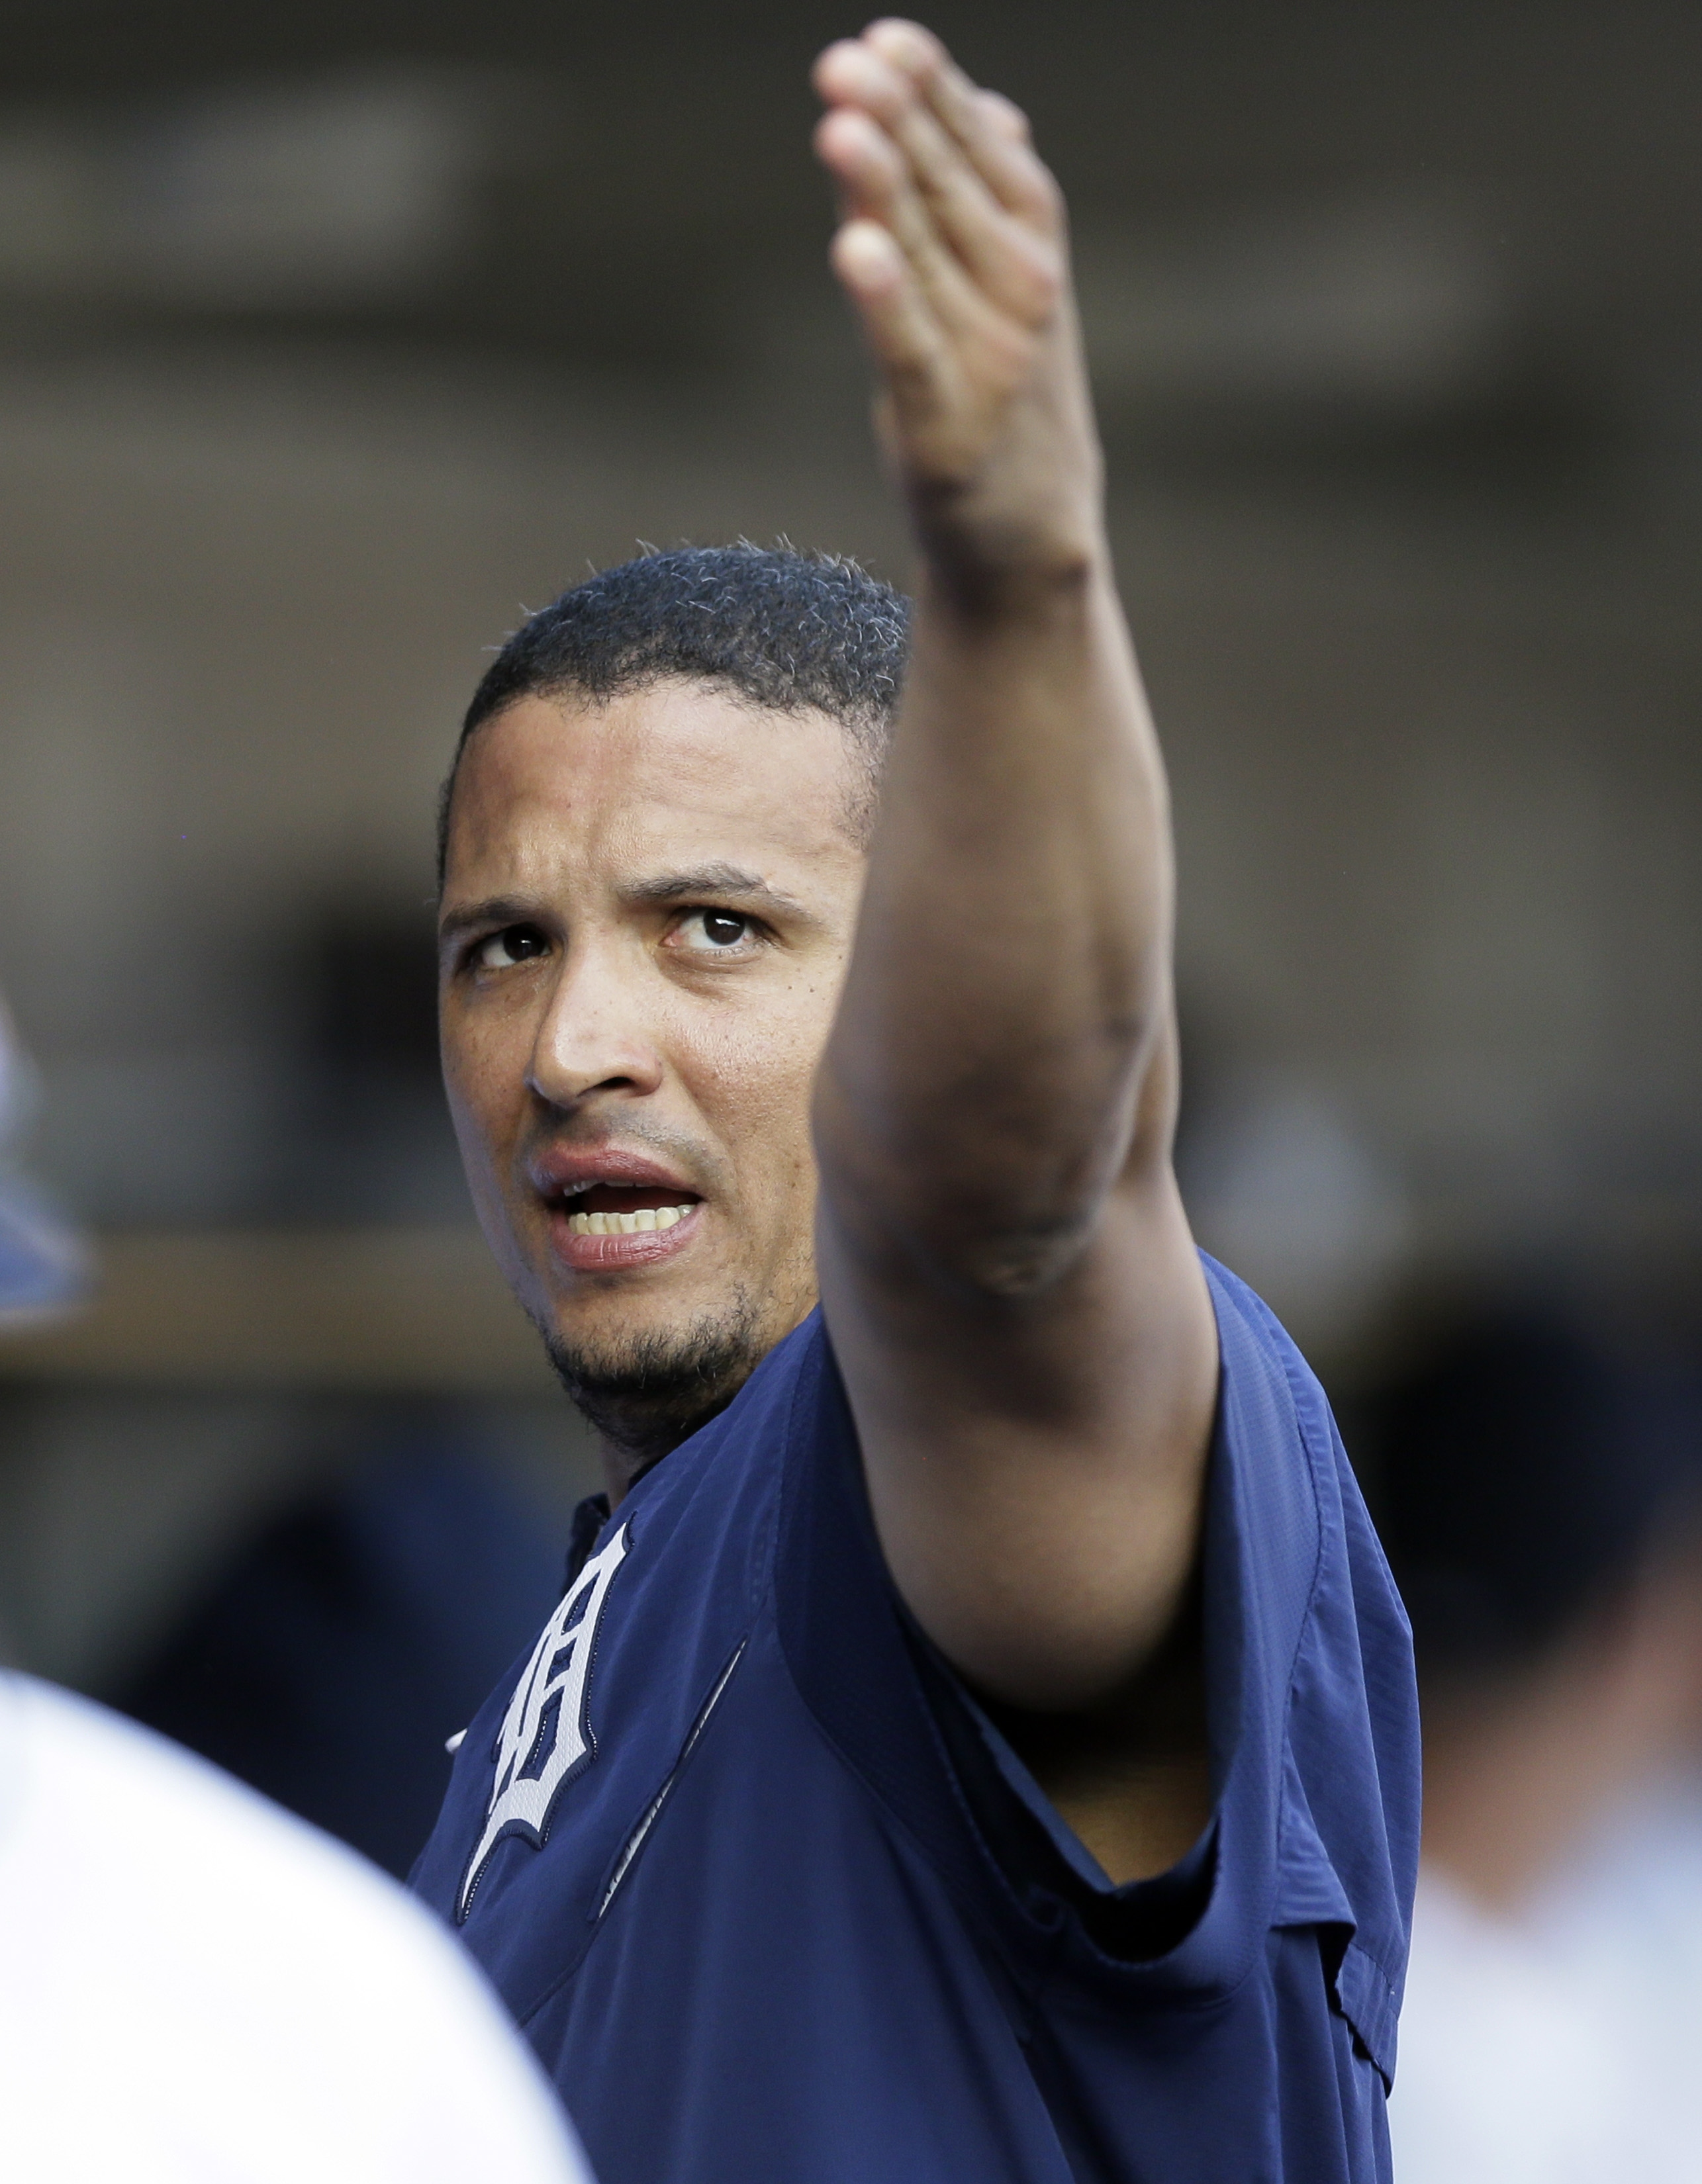 Detroit Tigers designated hitter Victor Martinez talks to a teammate before the first inning of a baseball game against the Chicago Cubs, Wednesday, June 10, 2015, in Detroit. (AP Photo/Carlos Osorio)